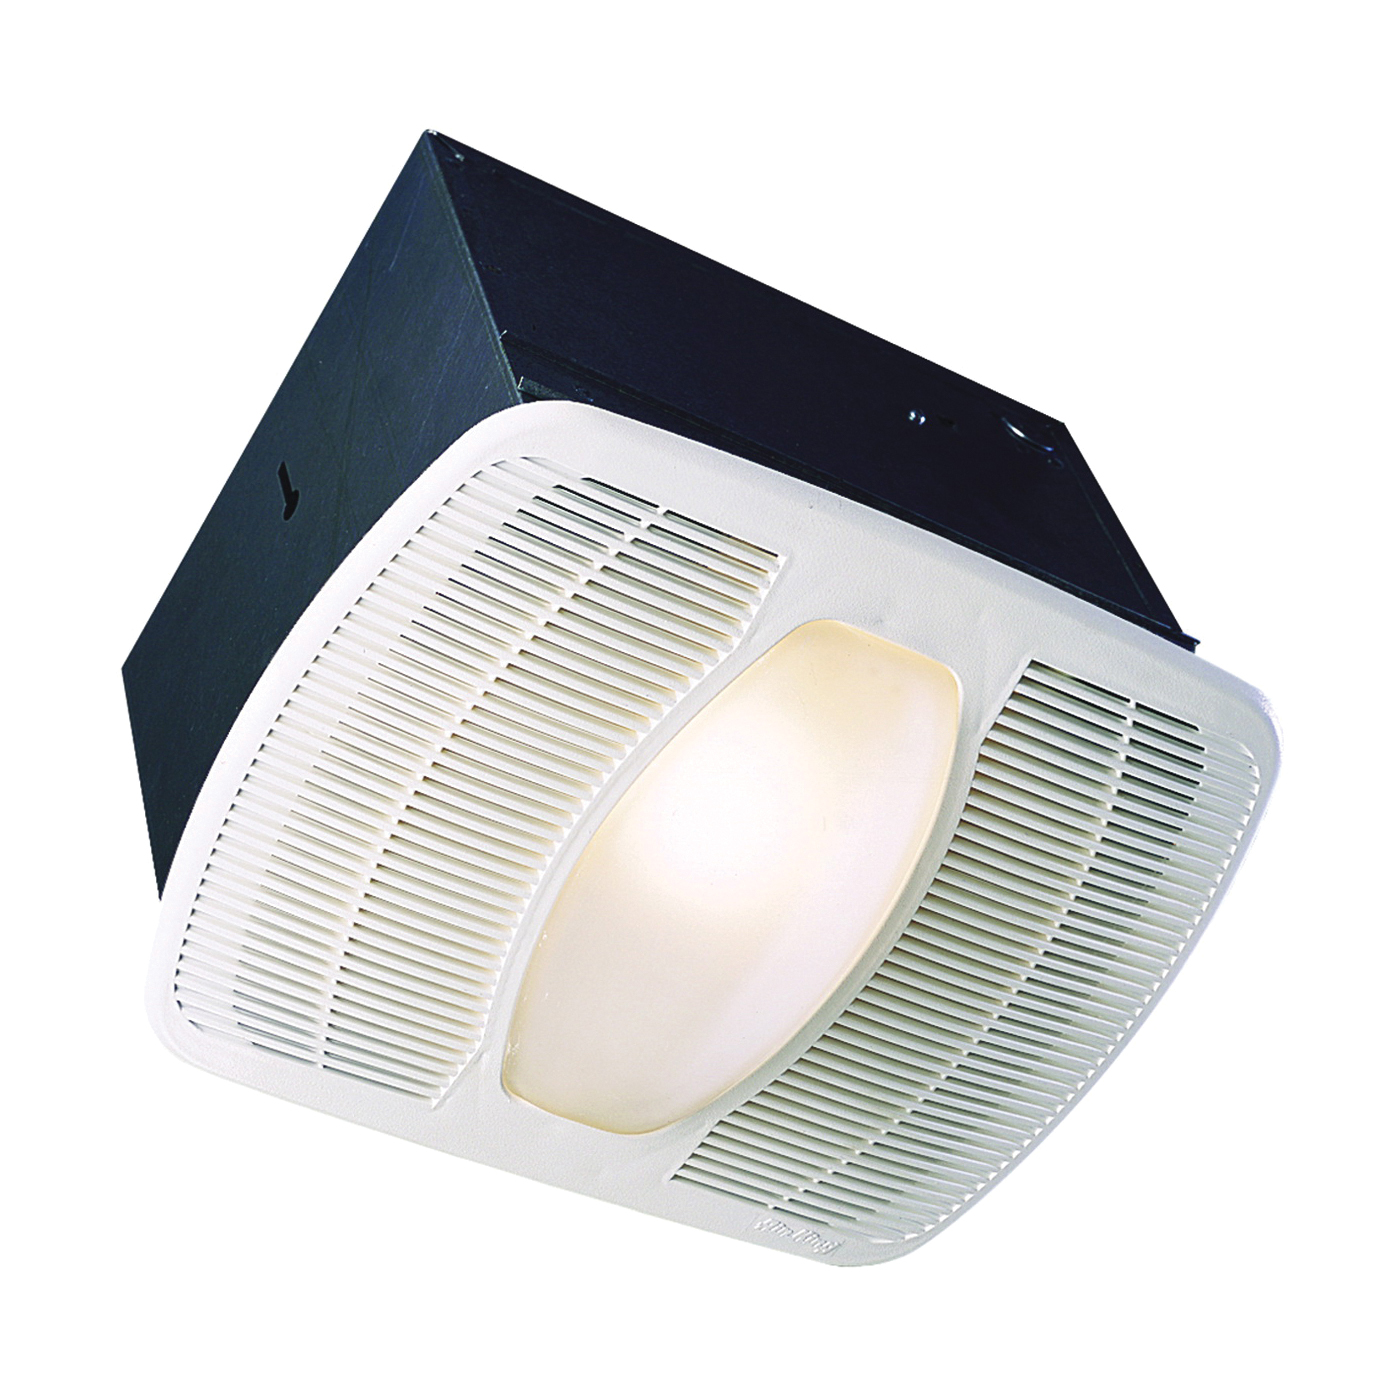 Picture of Air King LEDAK100 Exhaust Fan with Light, 0.6 A, 115/120 V, 100 cfm Air, 2 sones, LED Lamp, 4 in Duct, White